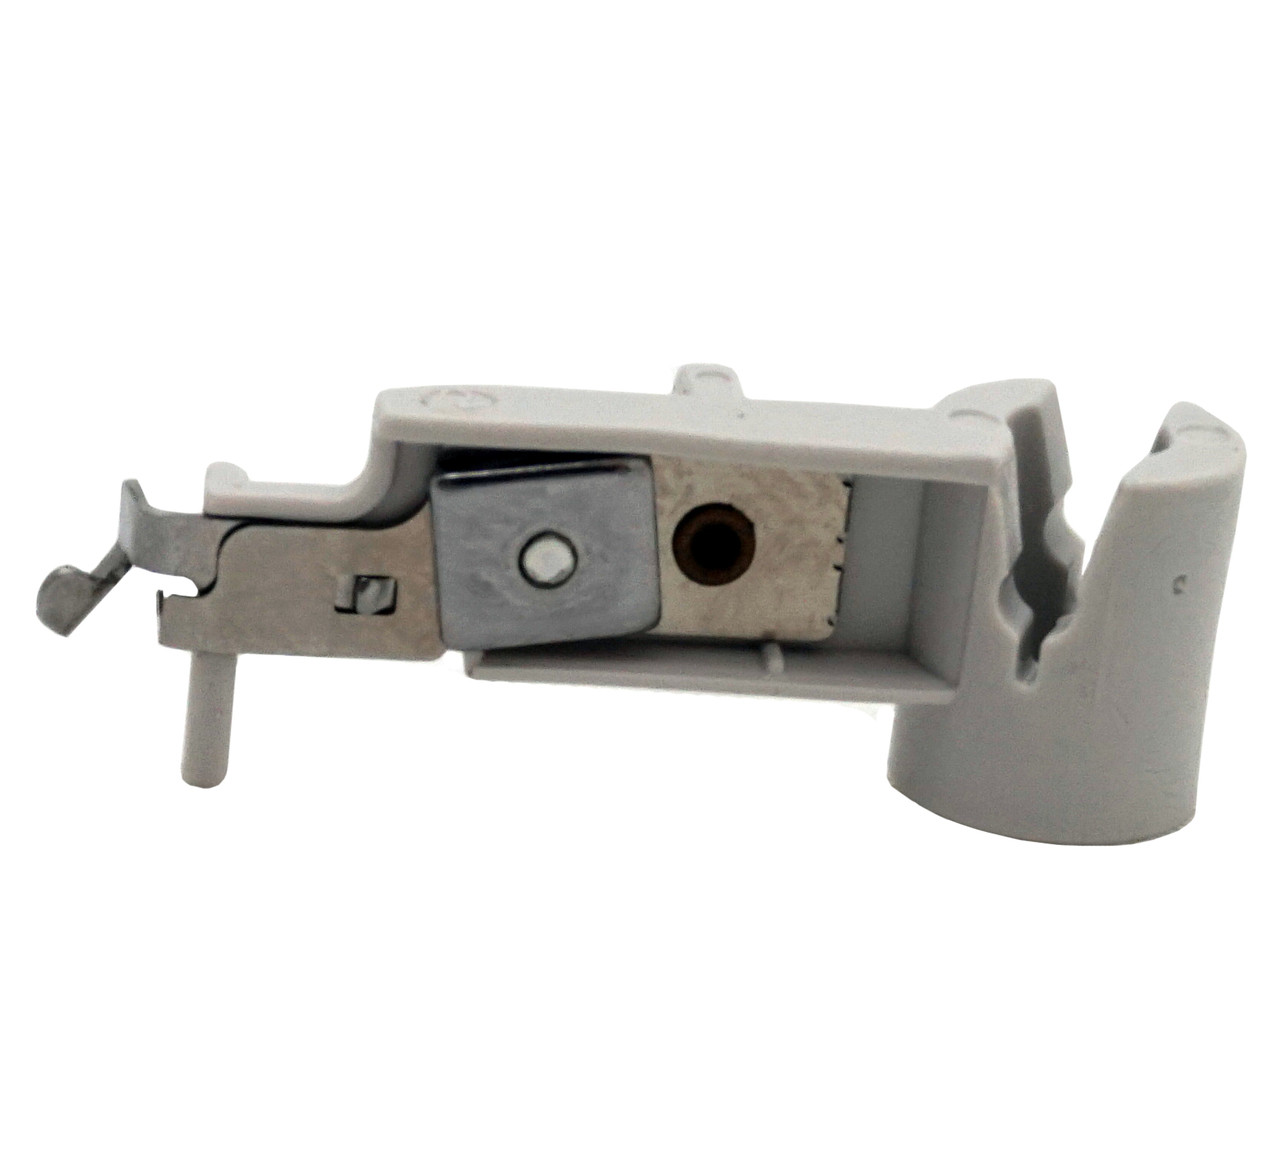 Janome Needle Threader Fits MC 6500 and MC 6600 and More